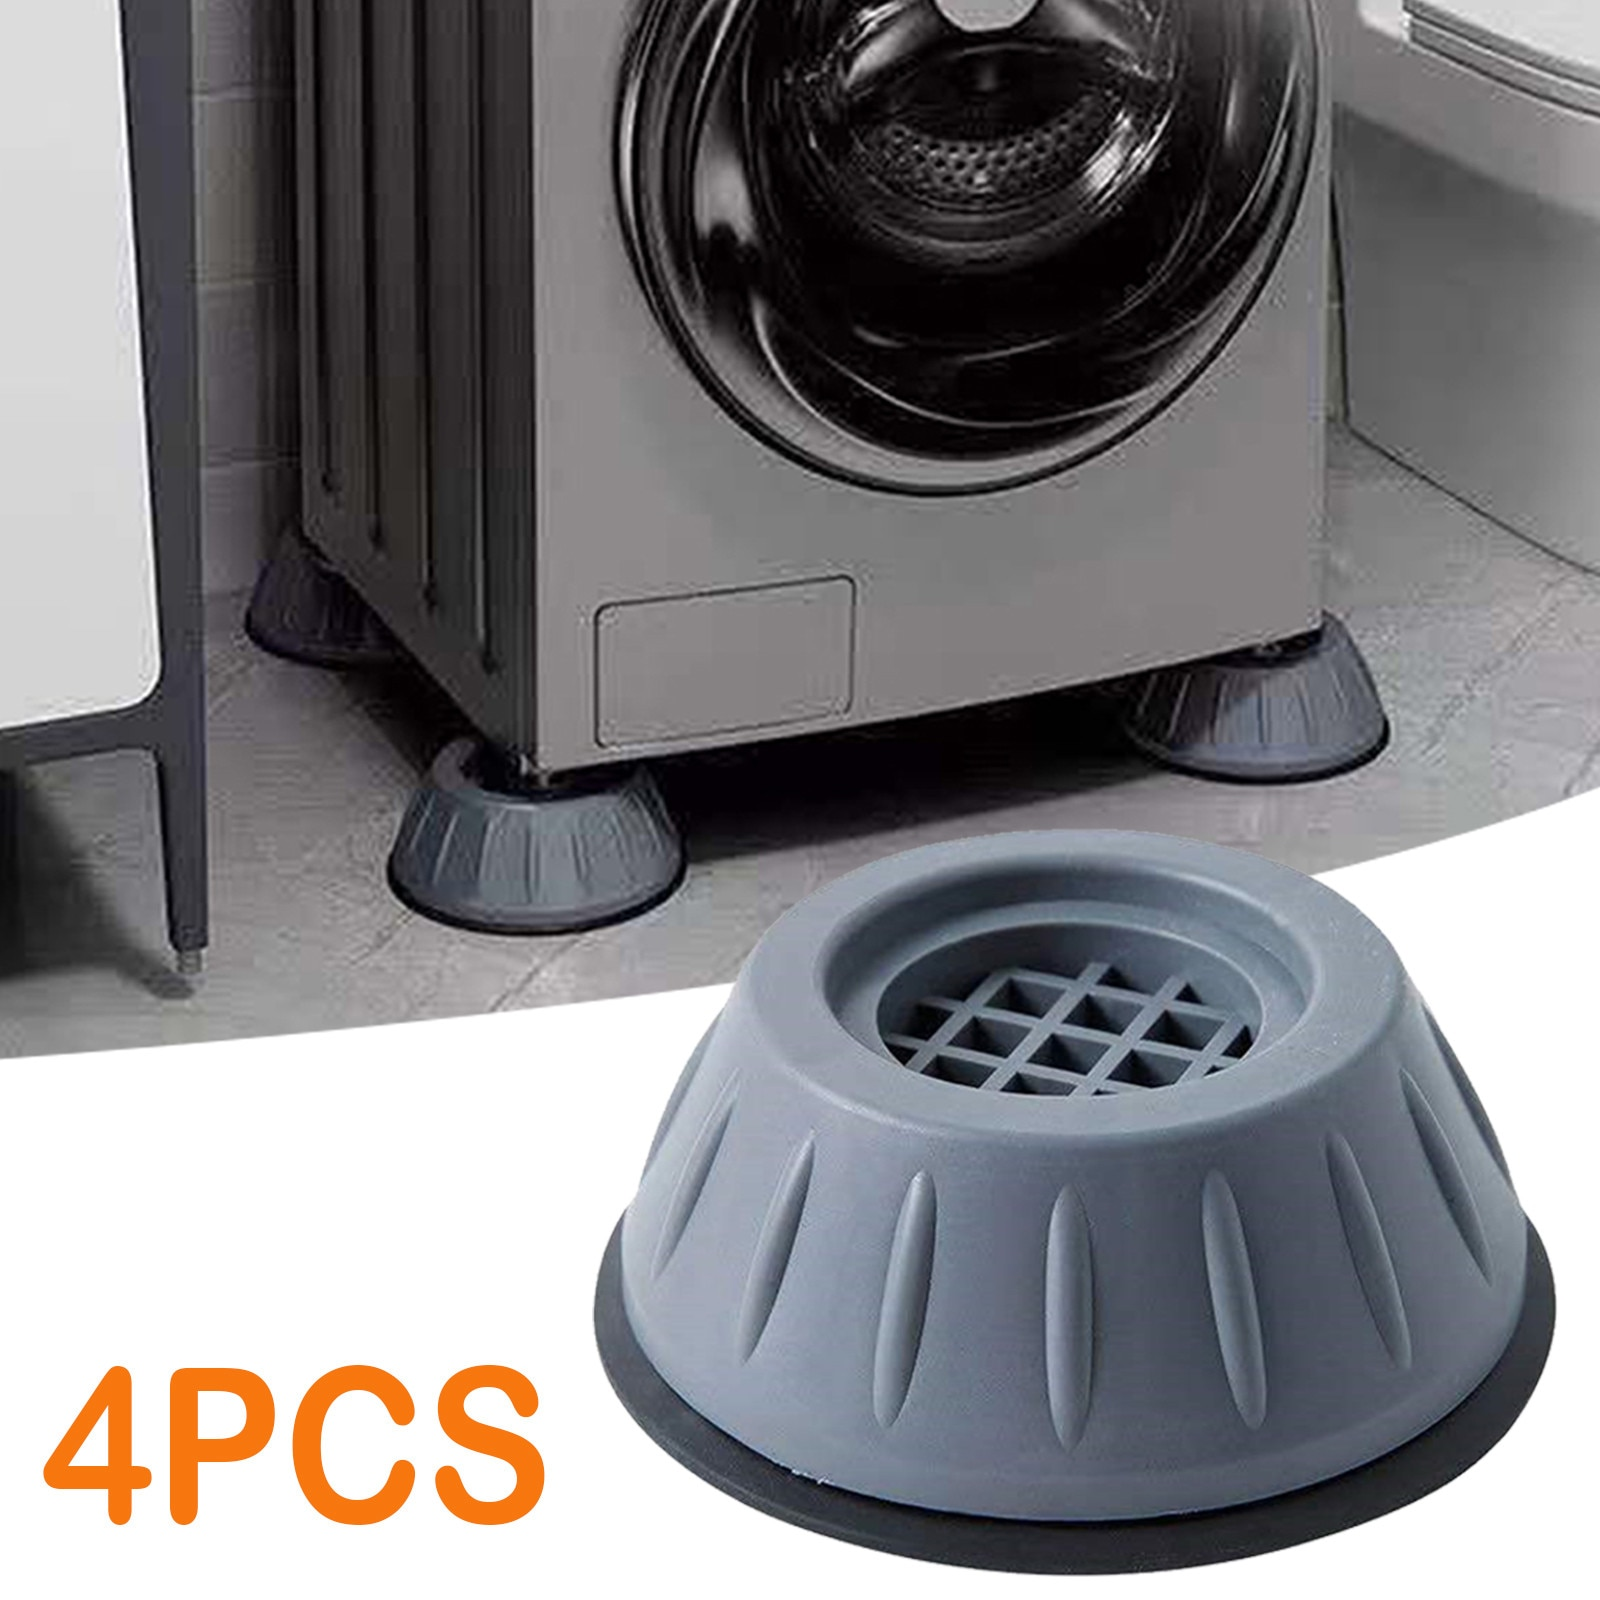 high-quality-washing-machine-shock-pads-non-slip-mats-refrigerator-anti-vibration-pad-4pcs-set-quality55